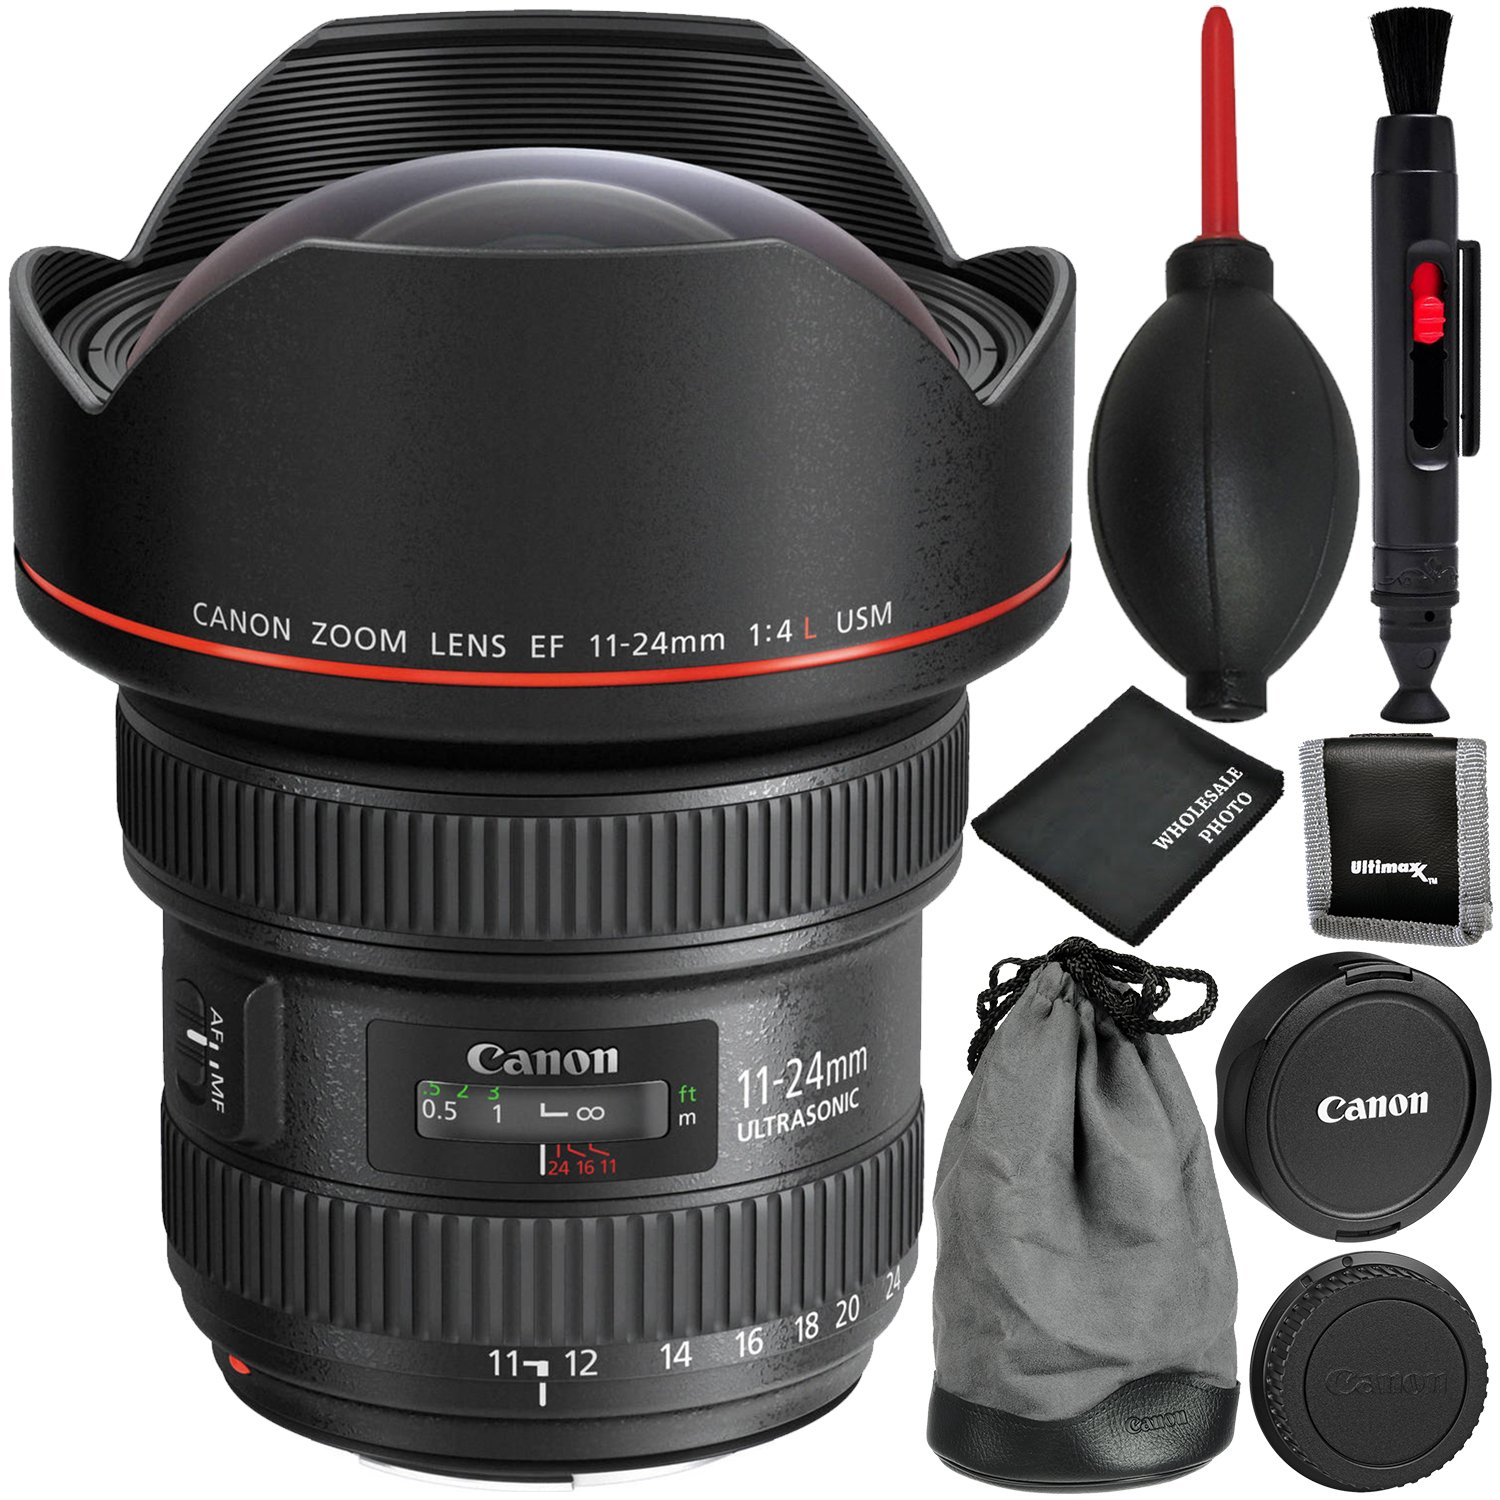 Canon EF 11-24mm f/4L USM Lens - 4PC Accessory Bundle Includes Memory Card Wallet + Dust Blower + Lens Cleaning Pen + Microfiber Cleaning Cloth